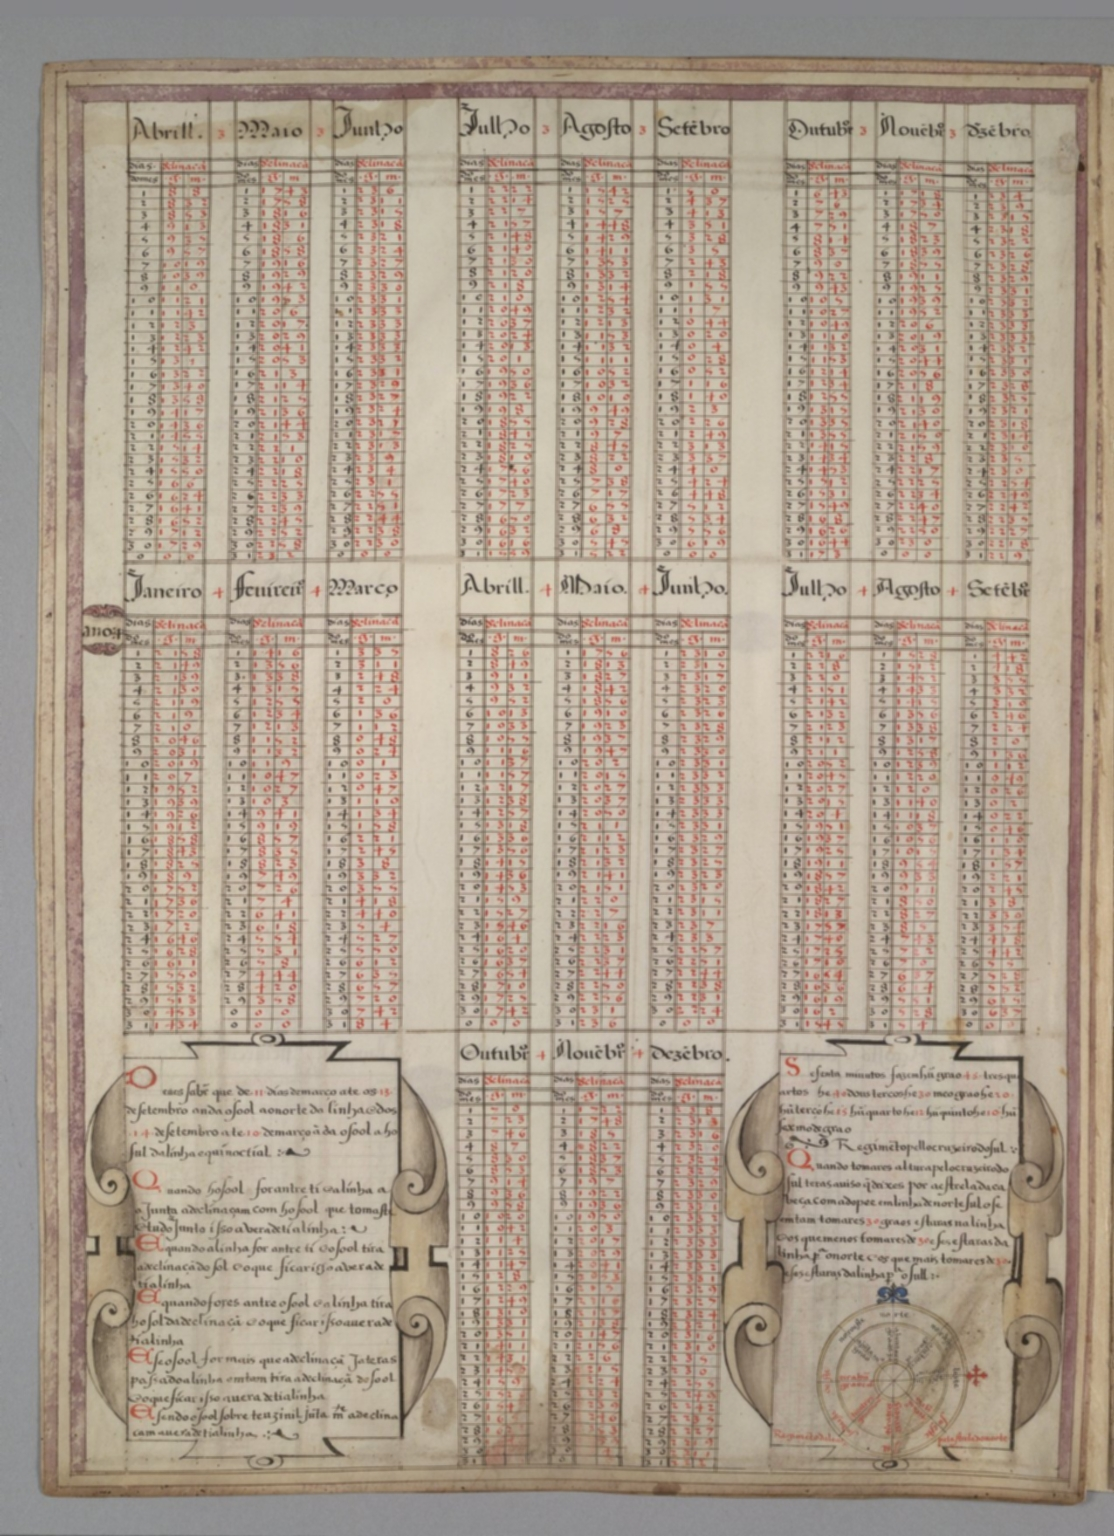 Tables of solar declinations and cosmographical data